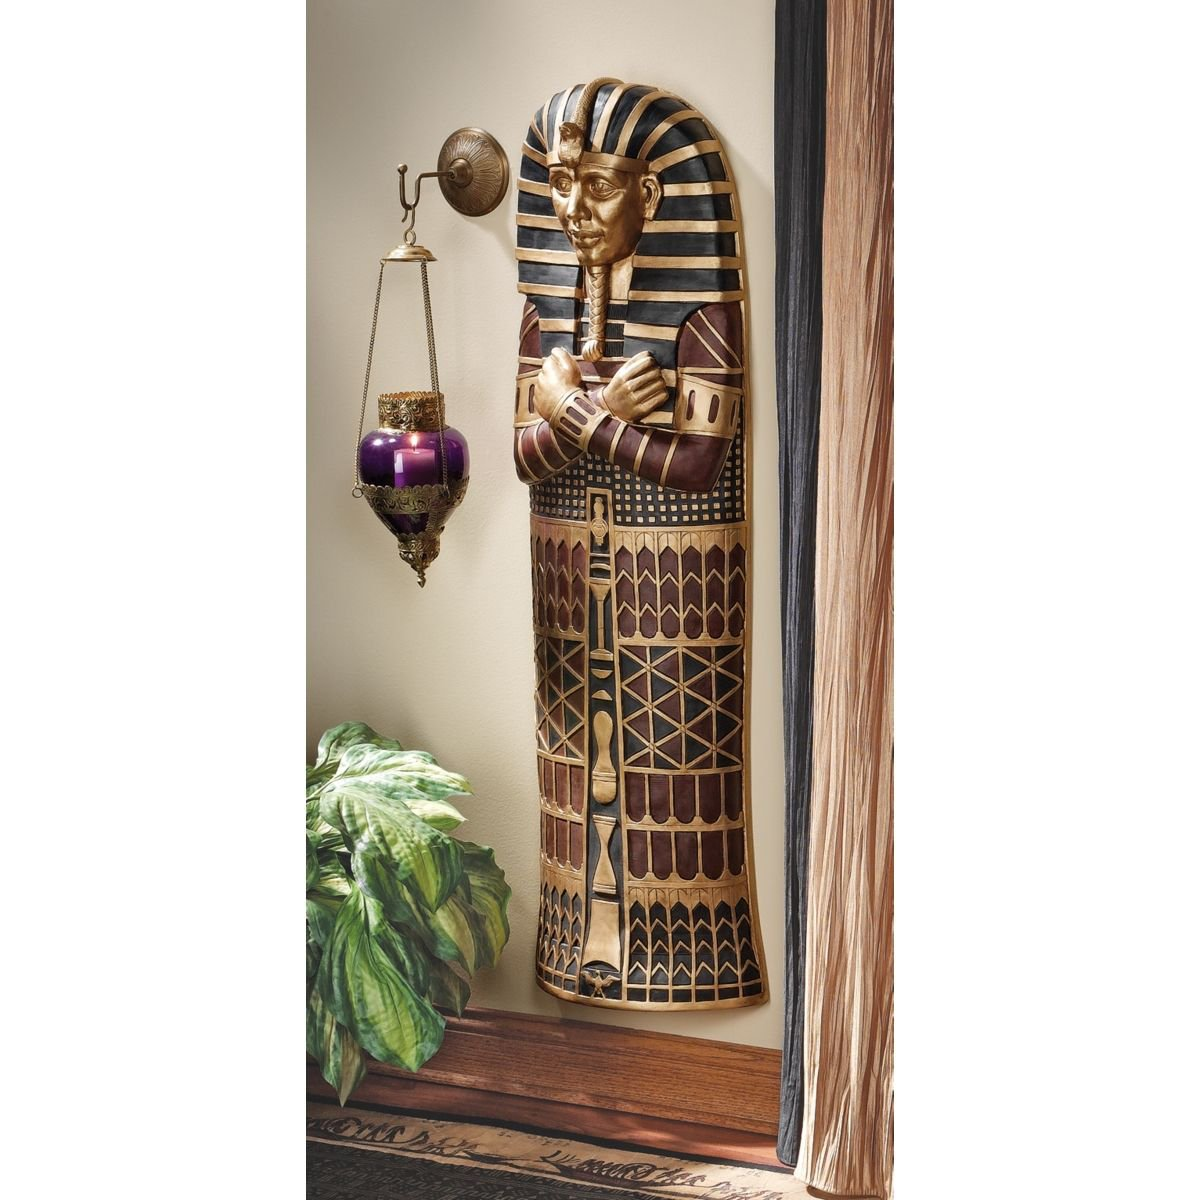 Design Toscano King Tut Sarcophagus Wall Sculpture KY1163